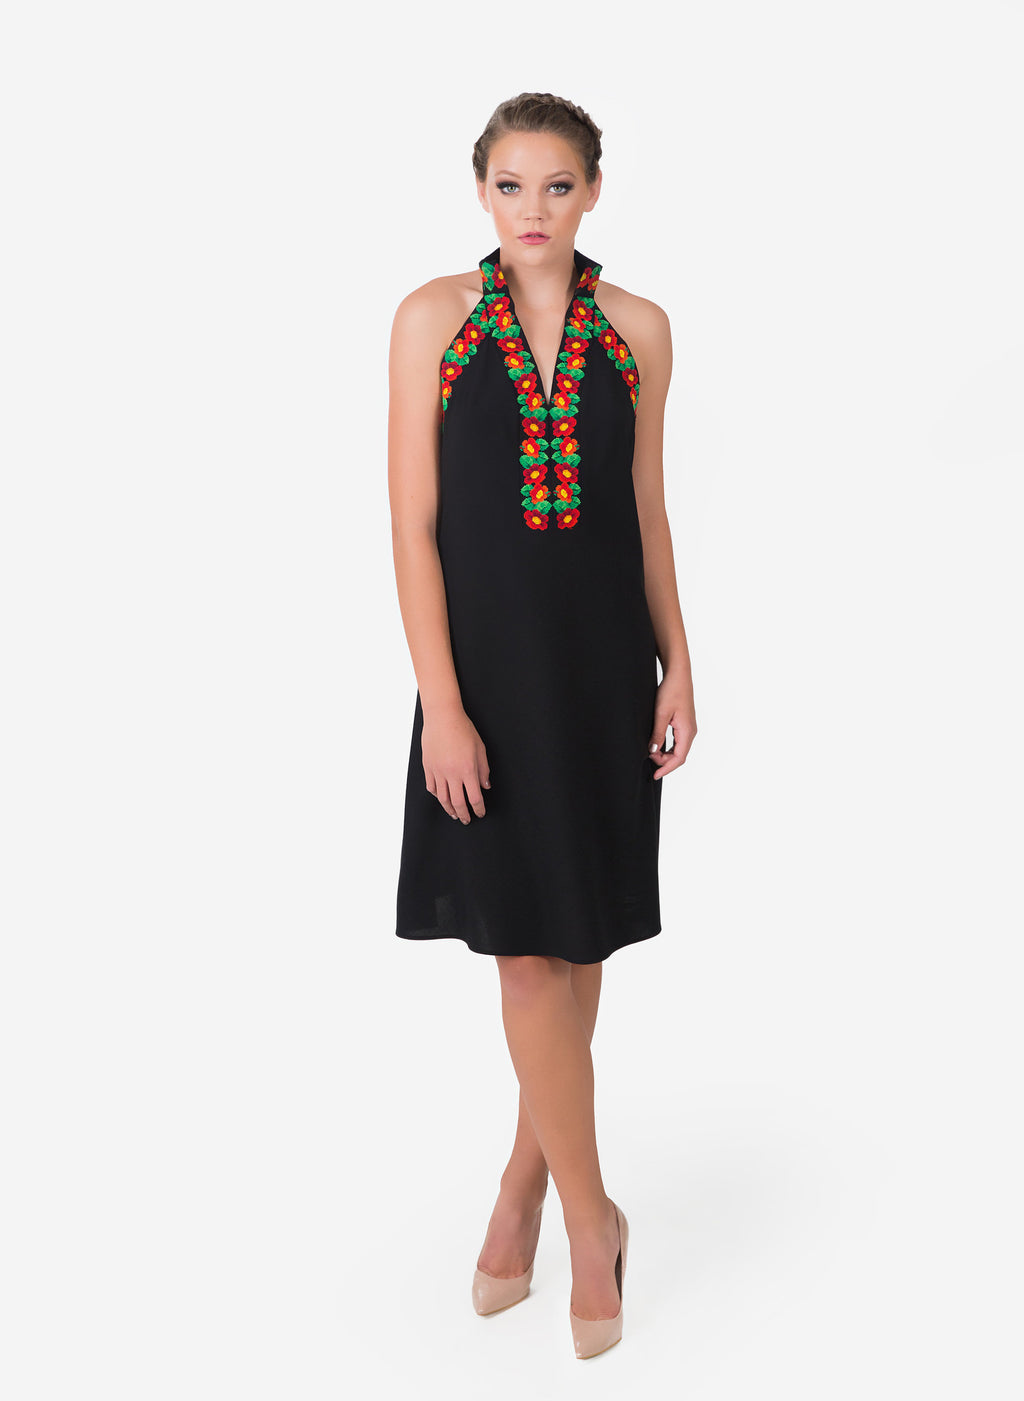 Front view of wool black cocktail dress.   Cool during summer parties yet warm for cooler occasions.